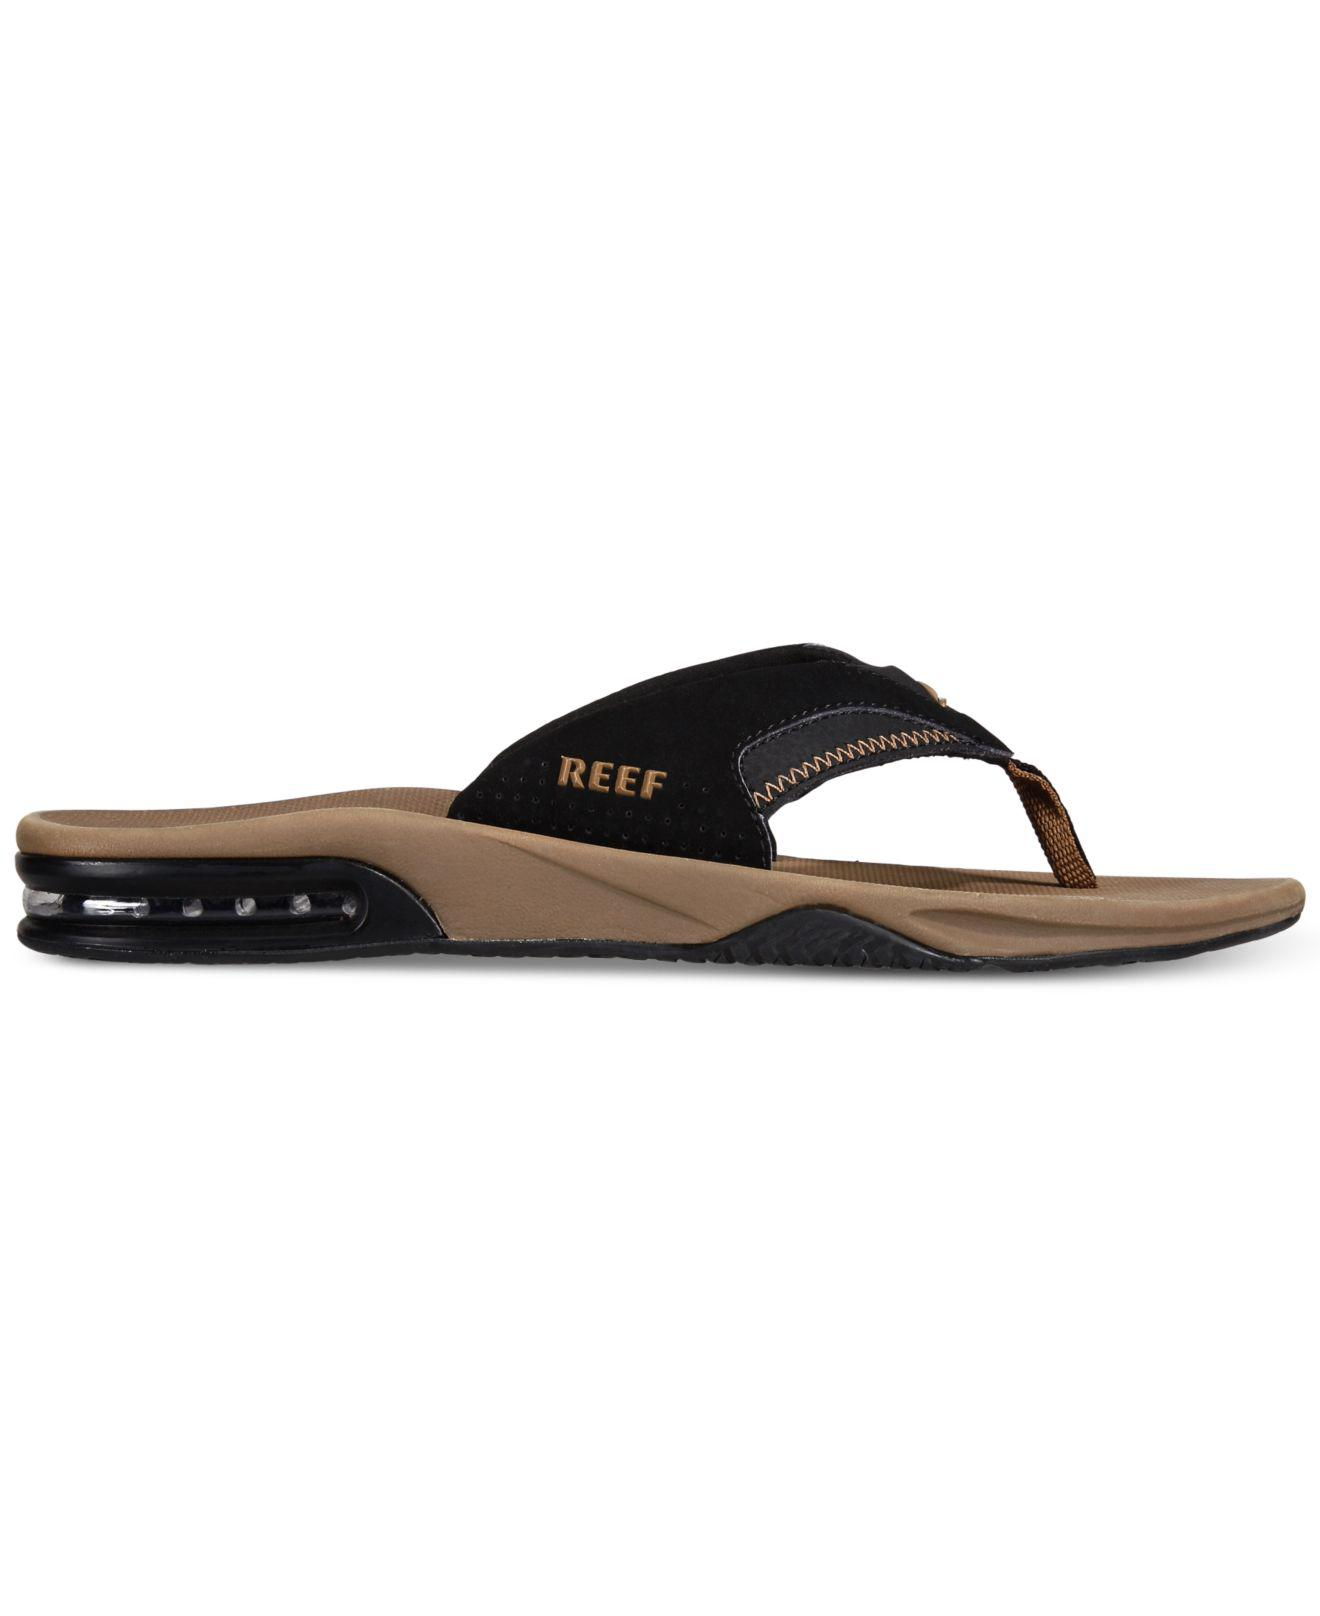 0cf763150c5 Lyst - Reef Fanning Thong Sandals With Bottle Opener in Brown